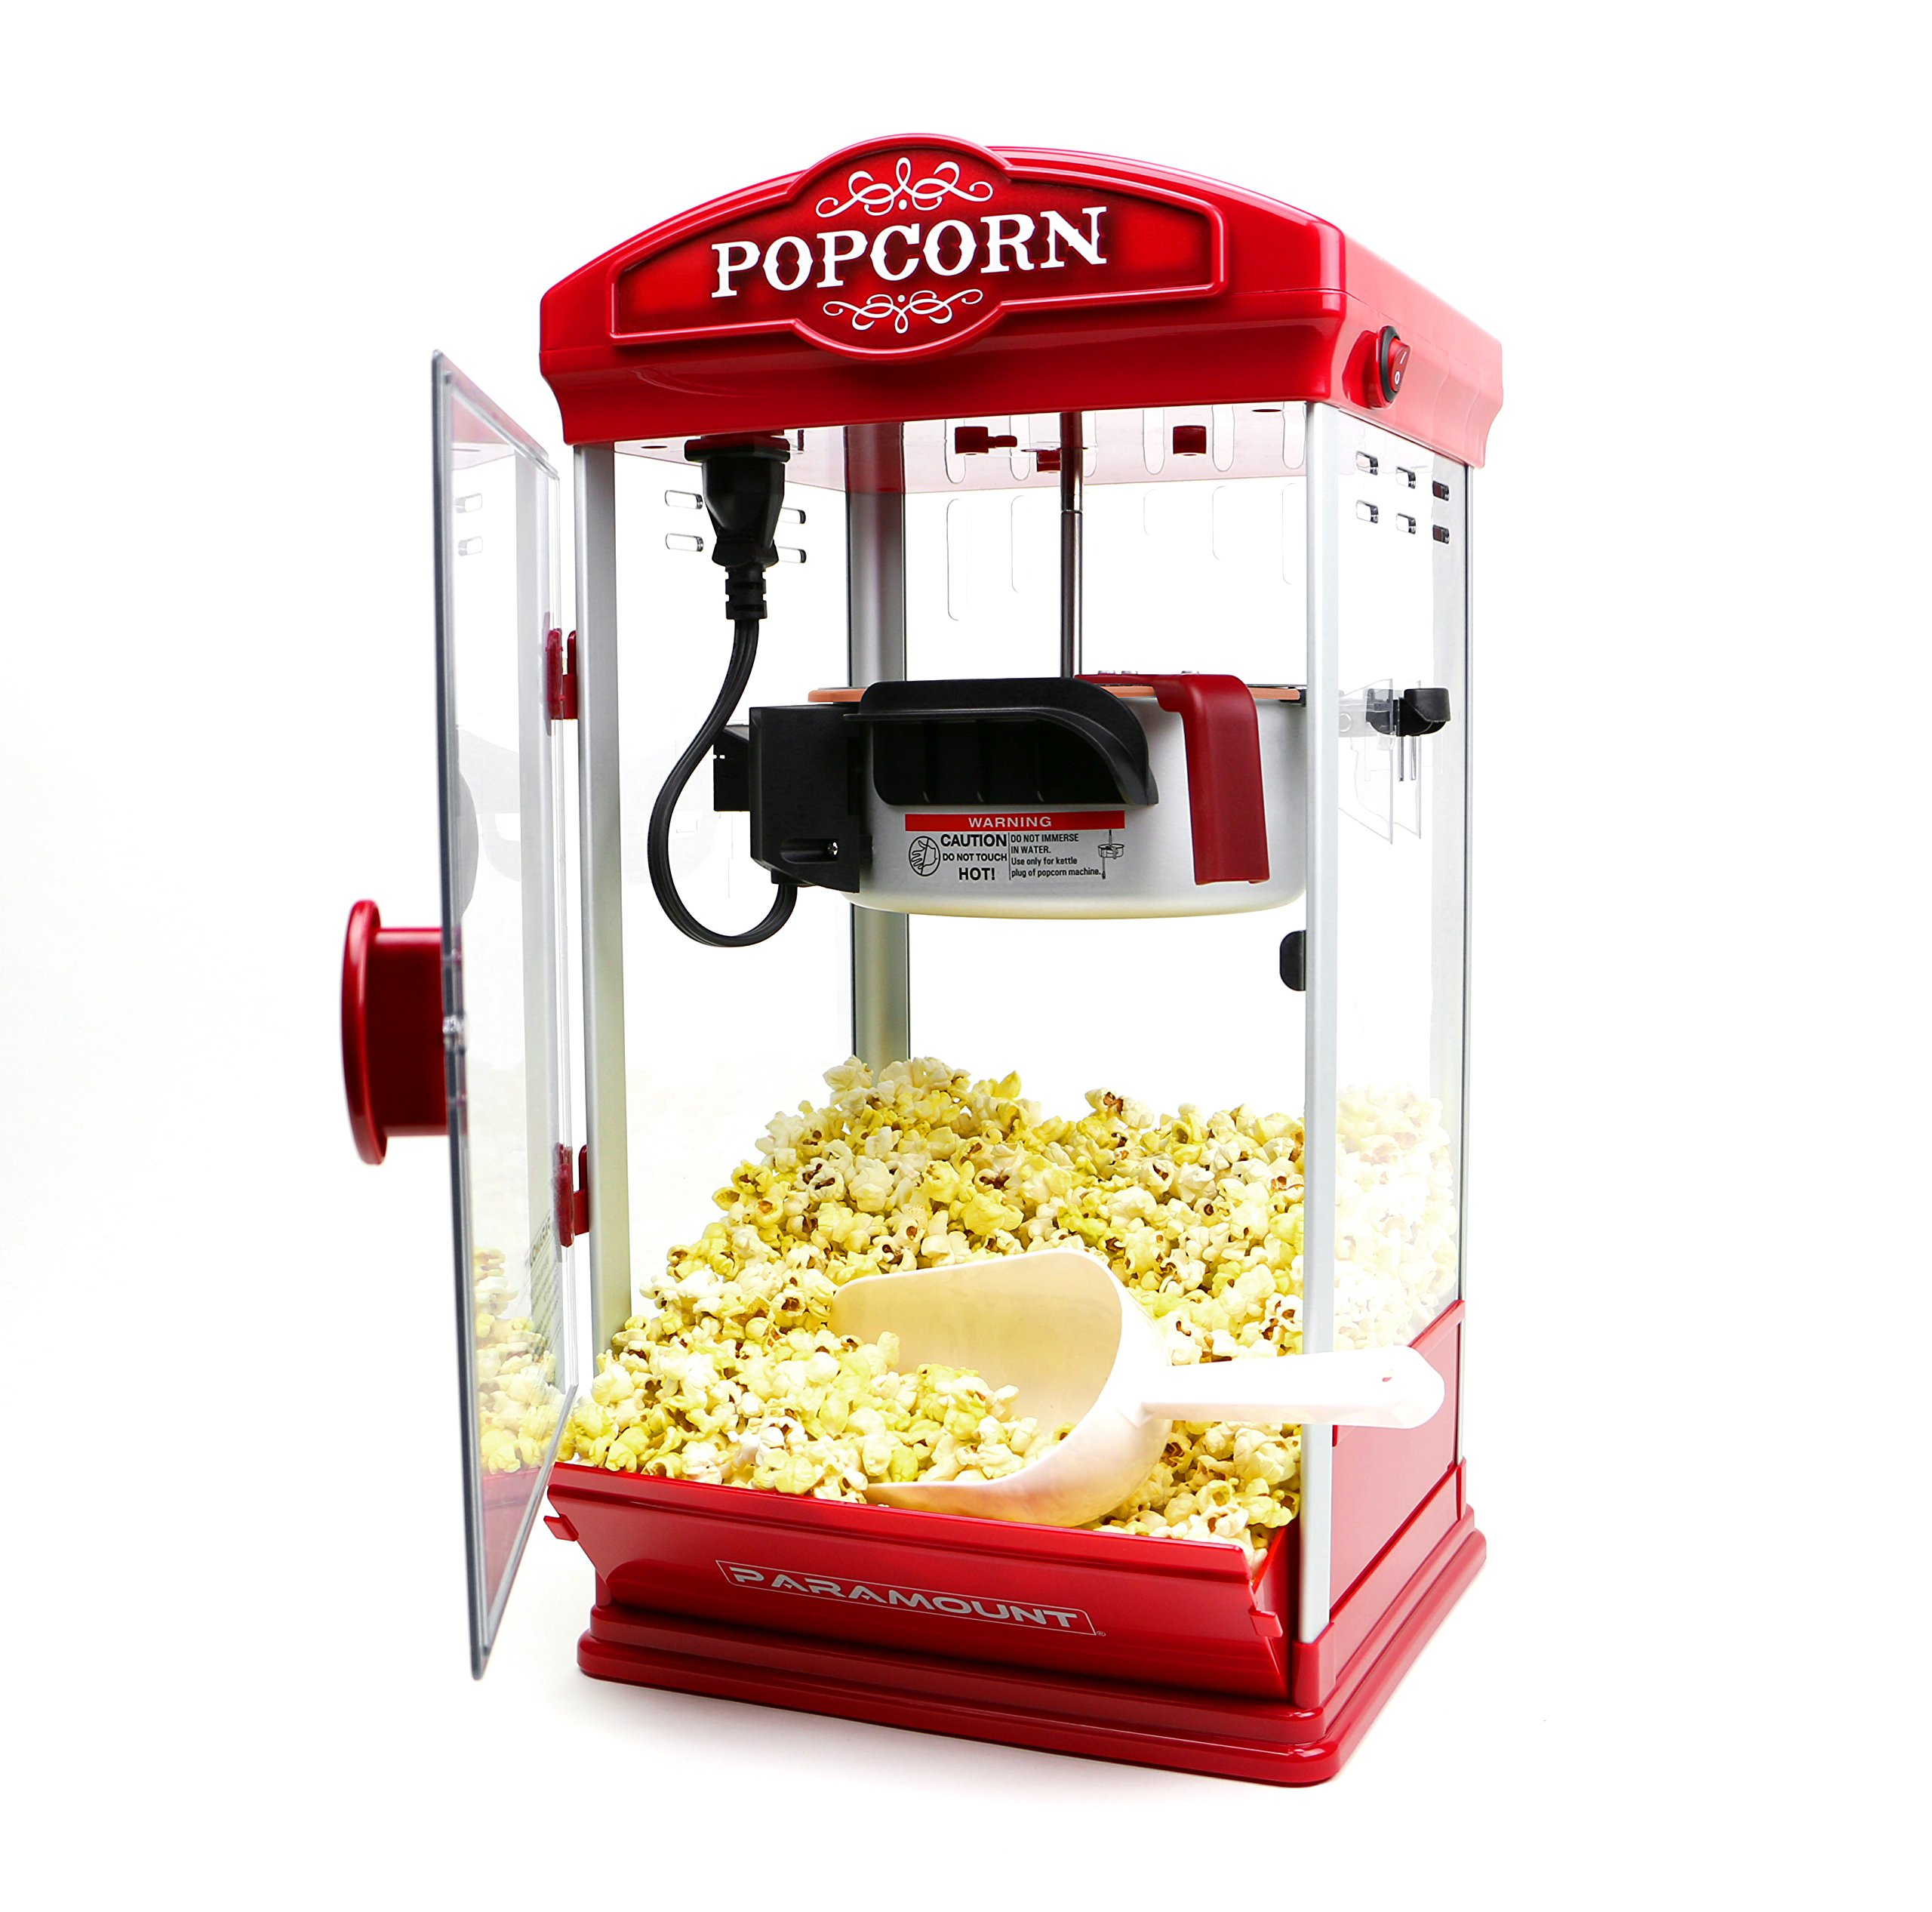 Popcorn Maker Machine by Paramount - New 8oz Capacity Hot-Oil Popper [Color: Red] by Paramount